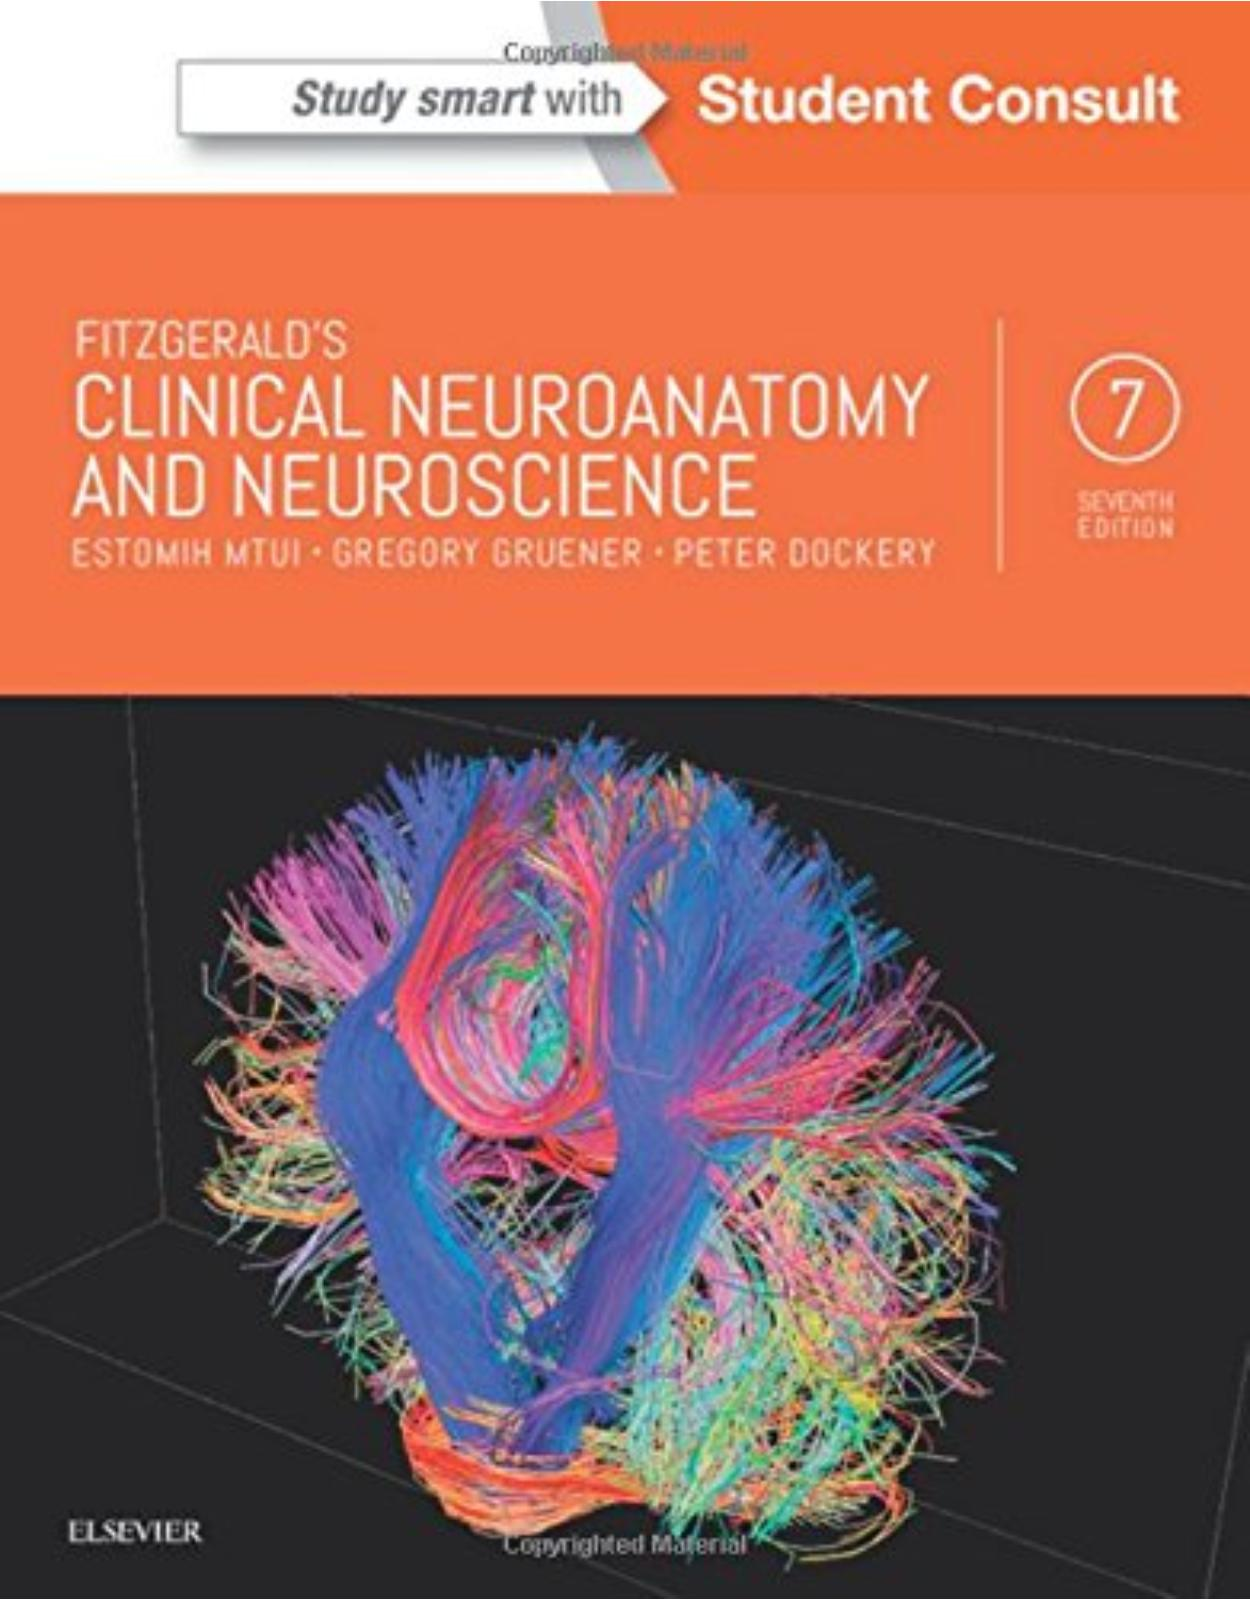 Fitzgerald's Clinical Neuroanatomy and Neuroscience, 7th Edition